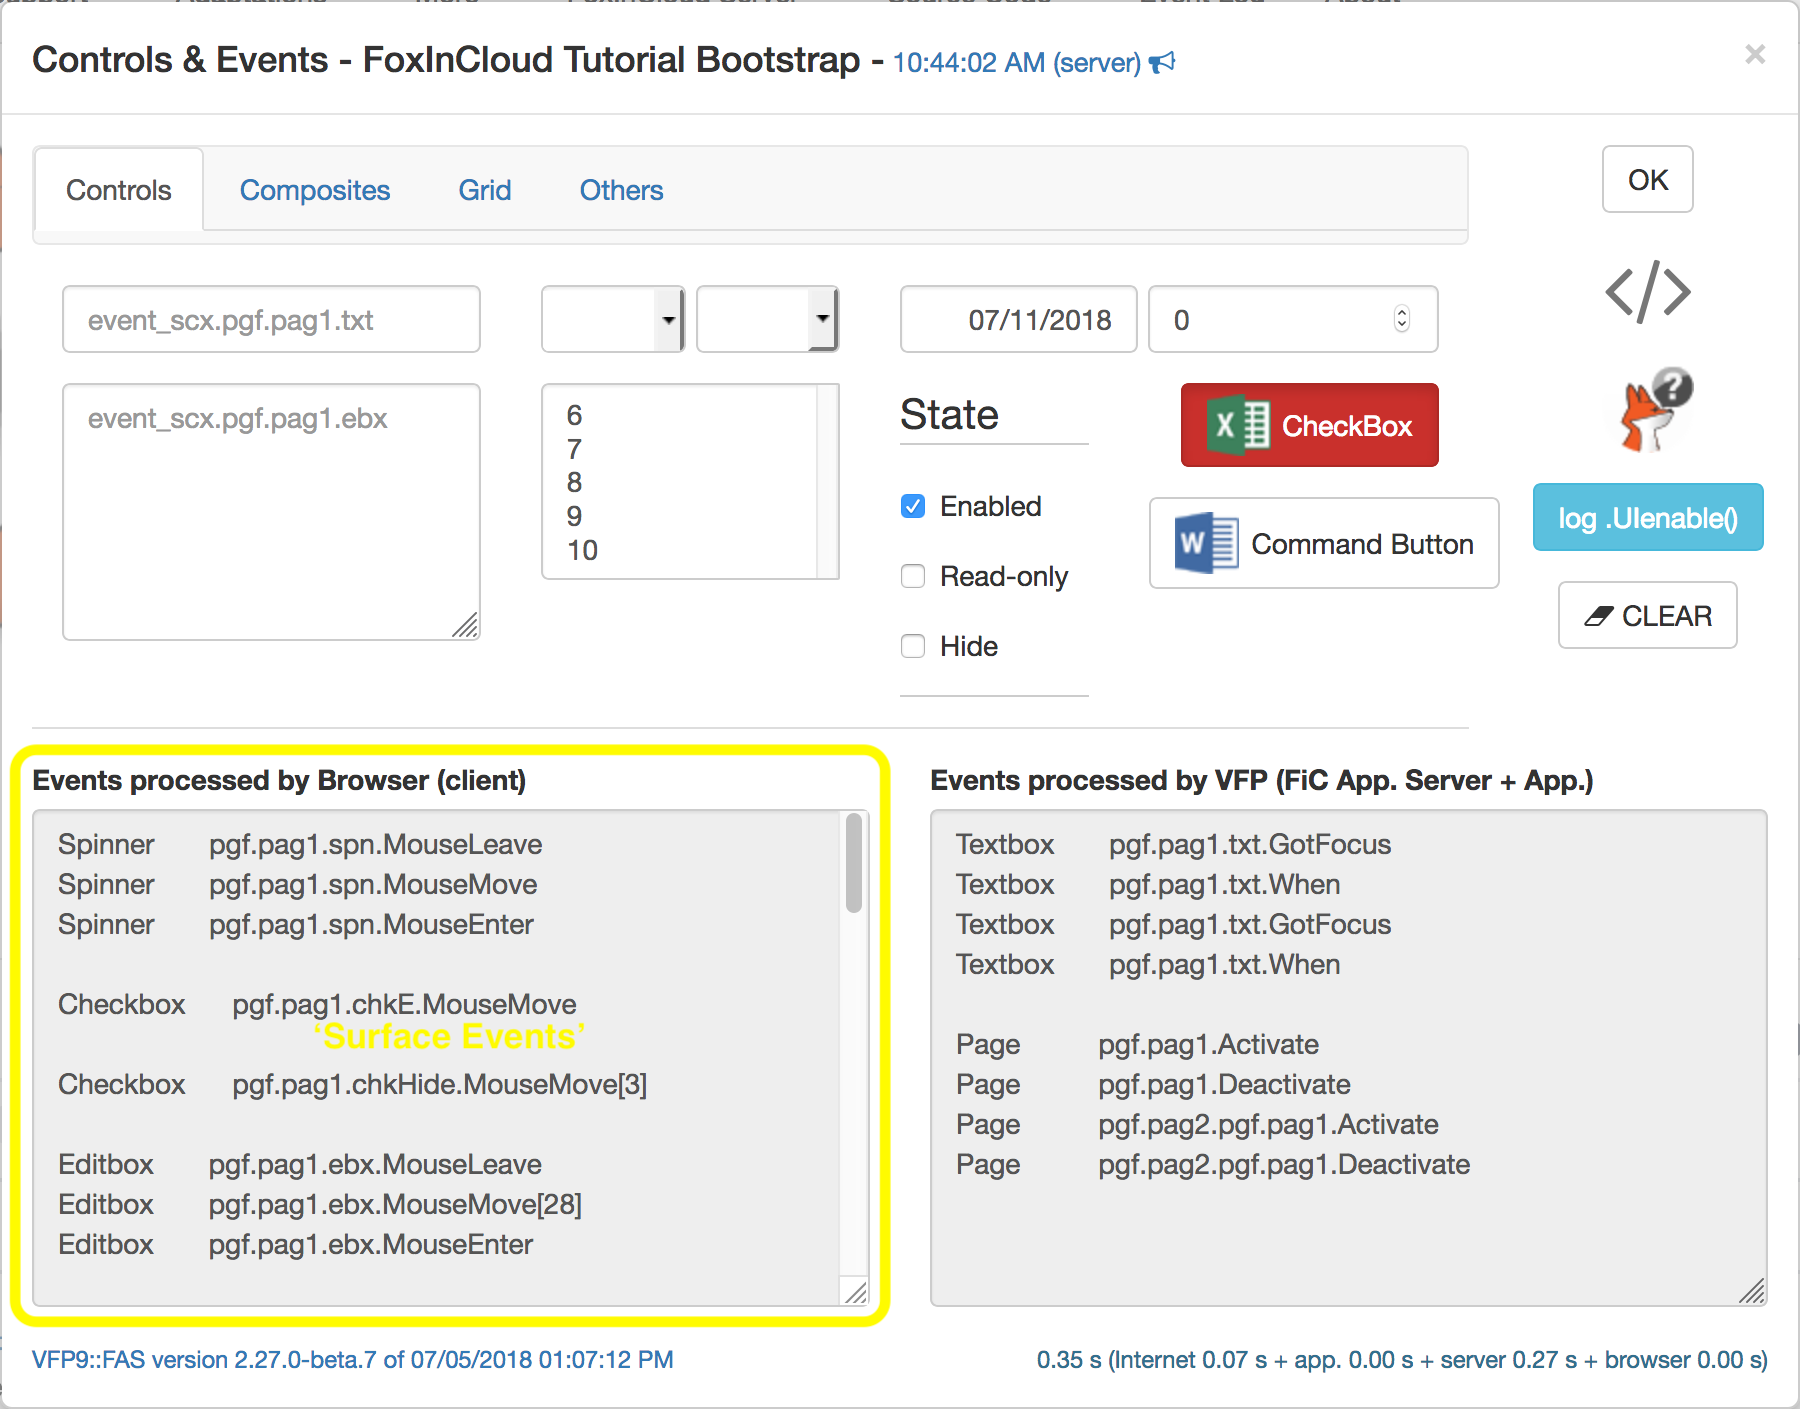 Surface Events In FoxInCloud Live Tutorial's 'Controls and Events' form